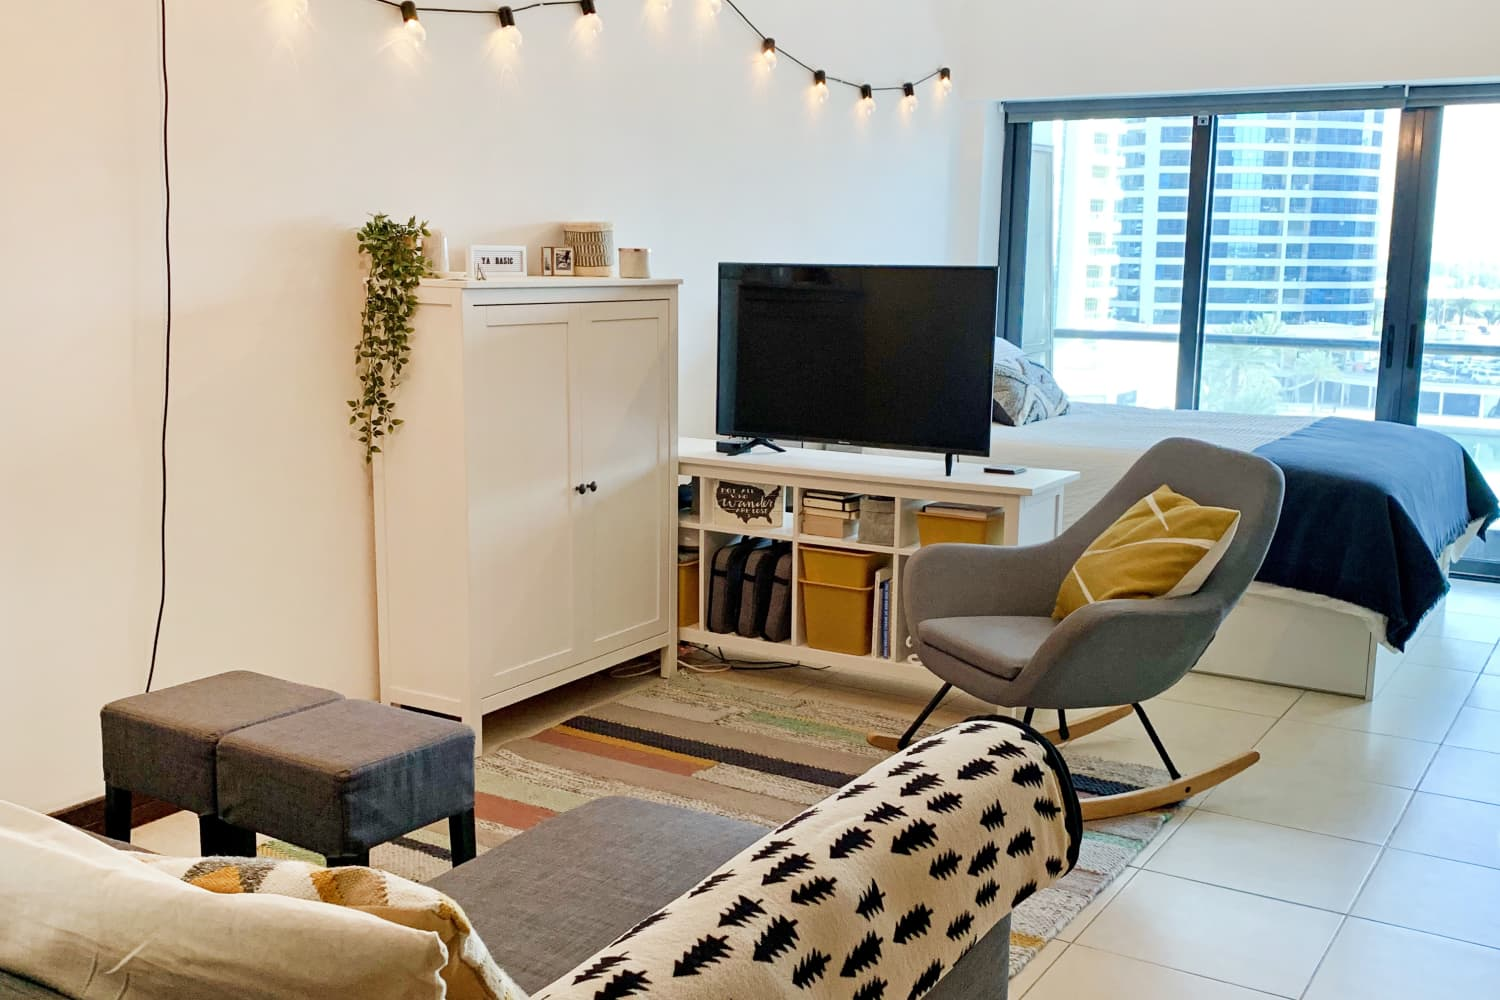 Creative Storage Solutions (and Lots of IKEA) Help Two People Share a 450-Square-Foot Studio